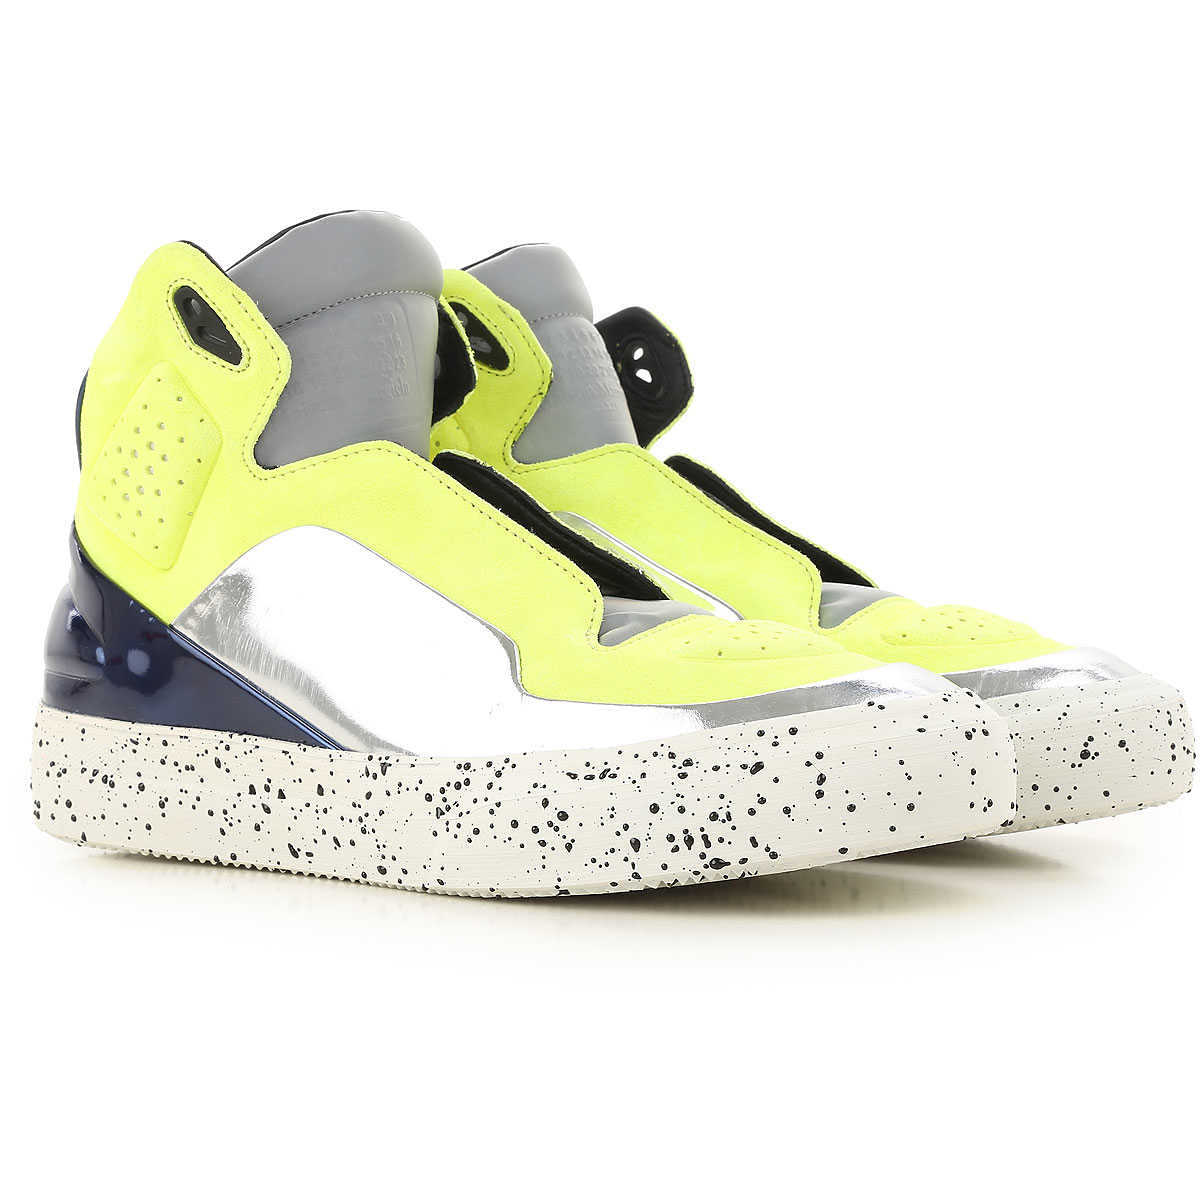 Maison Martin Margiela Sneakers for Men On Sale in Outlet Yellow Fluo - GOOFASH